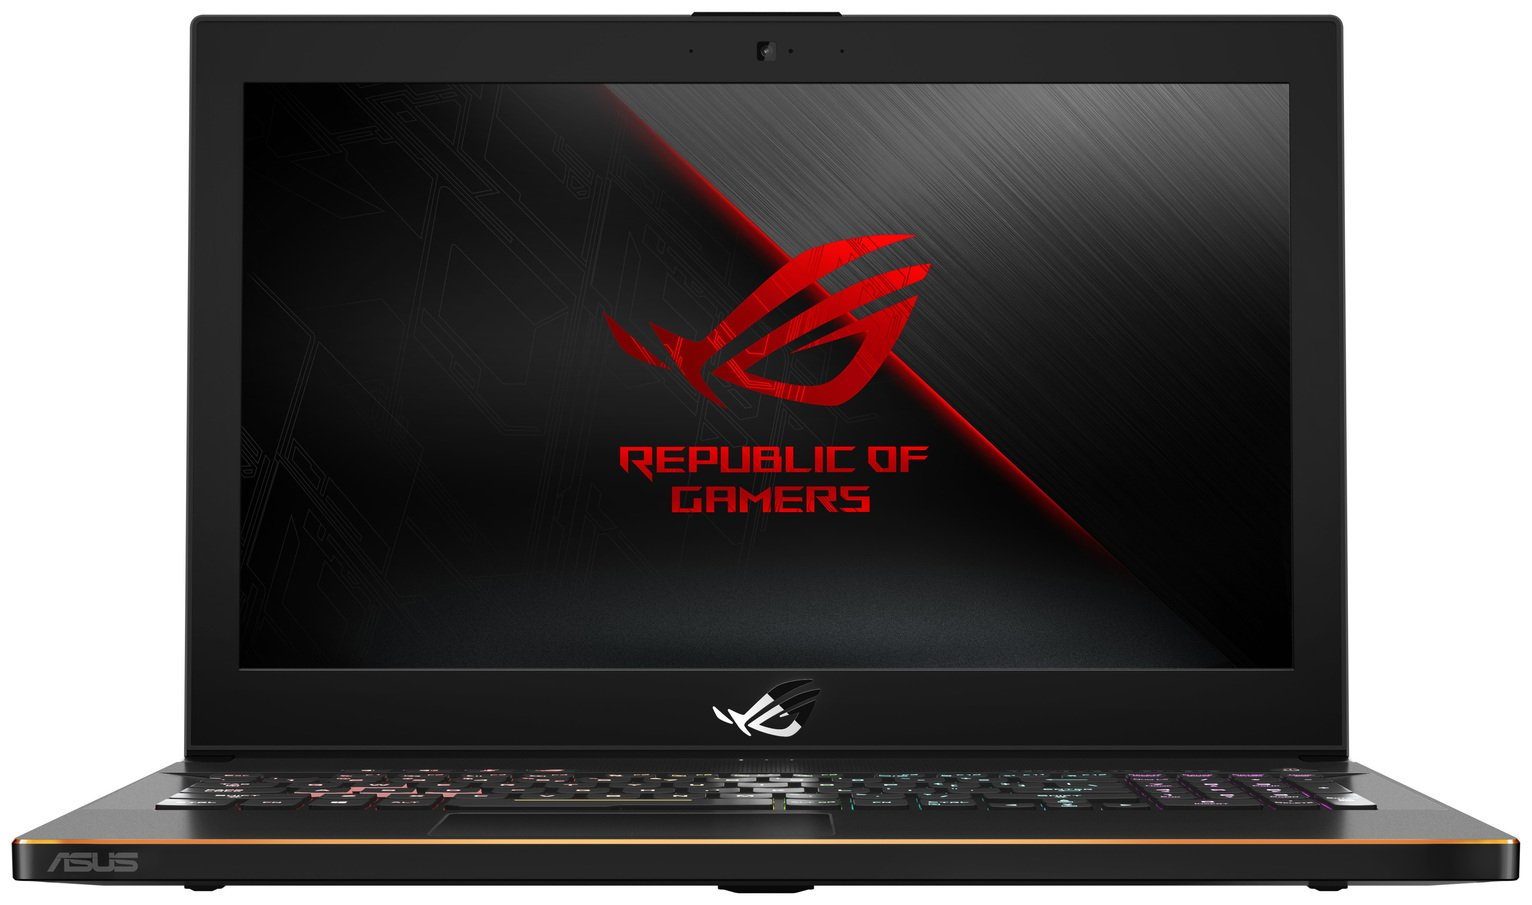 Image of Asus ROG Zephyrus M 15.6In i7 16GB 1TB GTX1060 Gaming Laptop